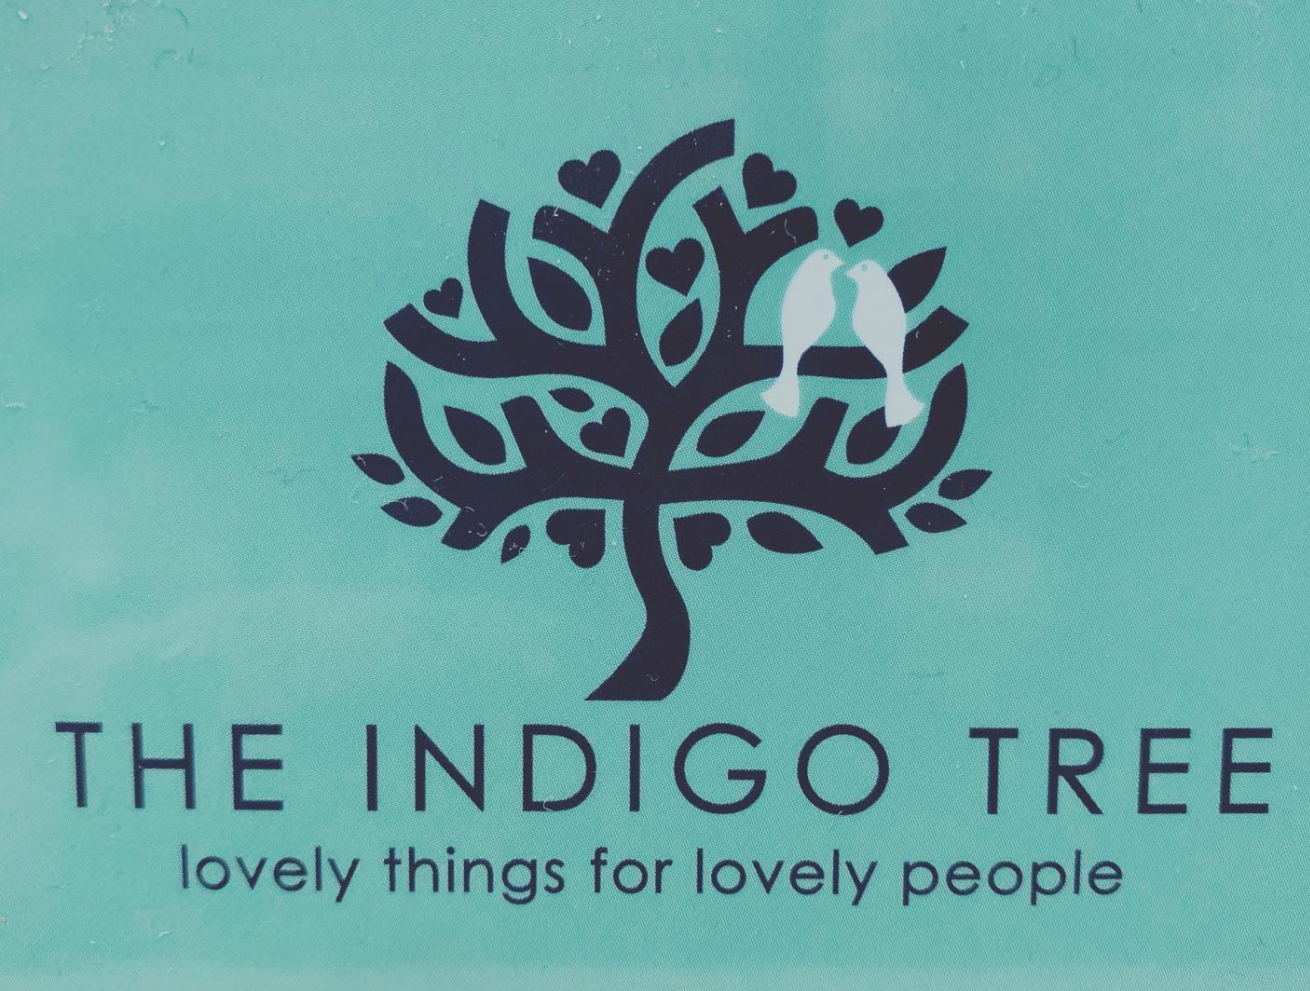 Above: The Indigo Tree's loyalty programme is appreciated by the retailer's customers.